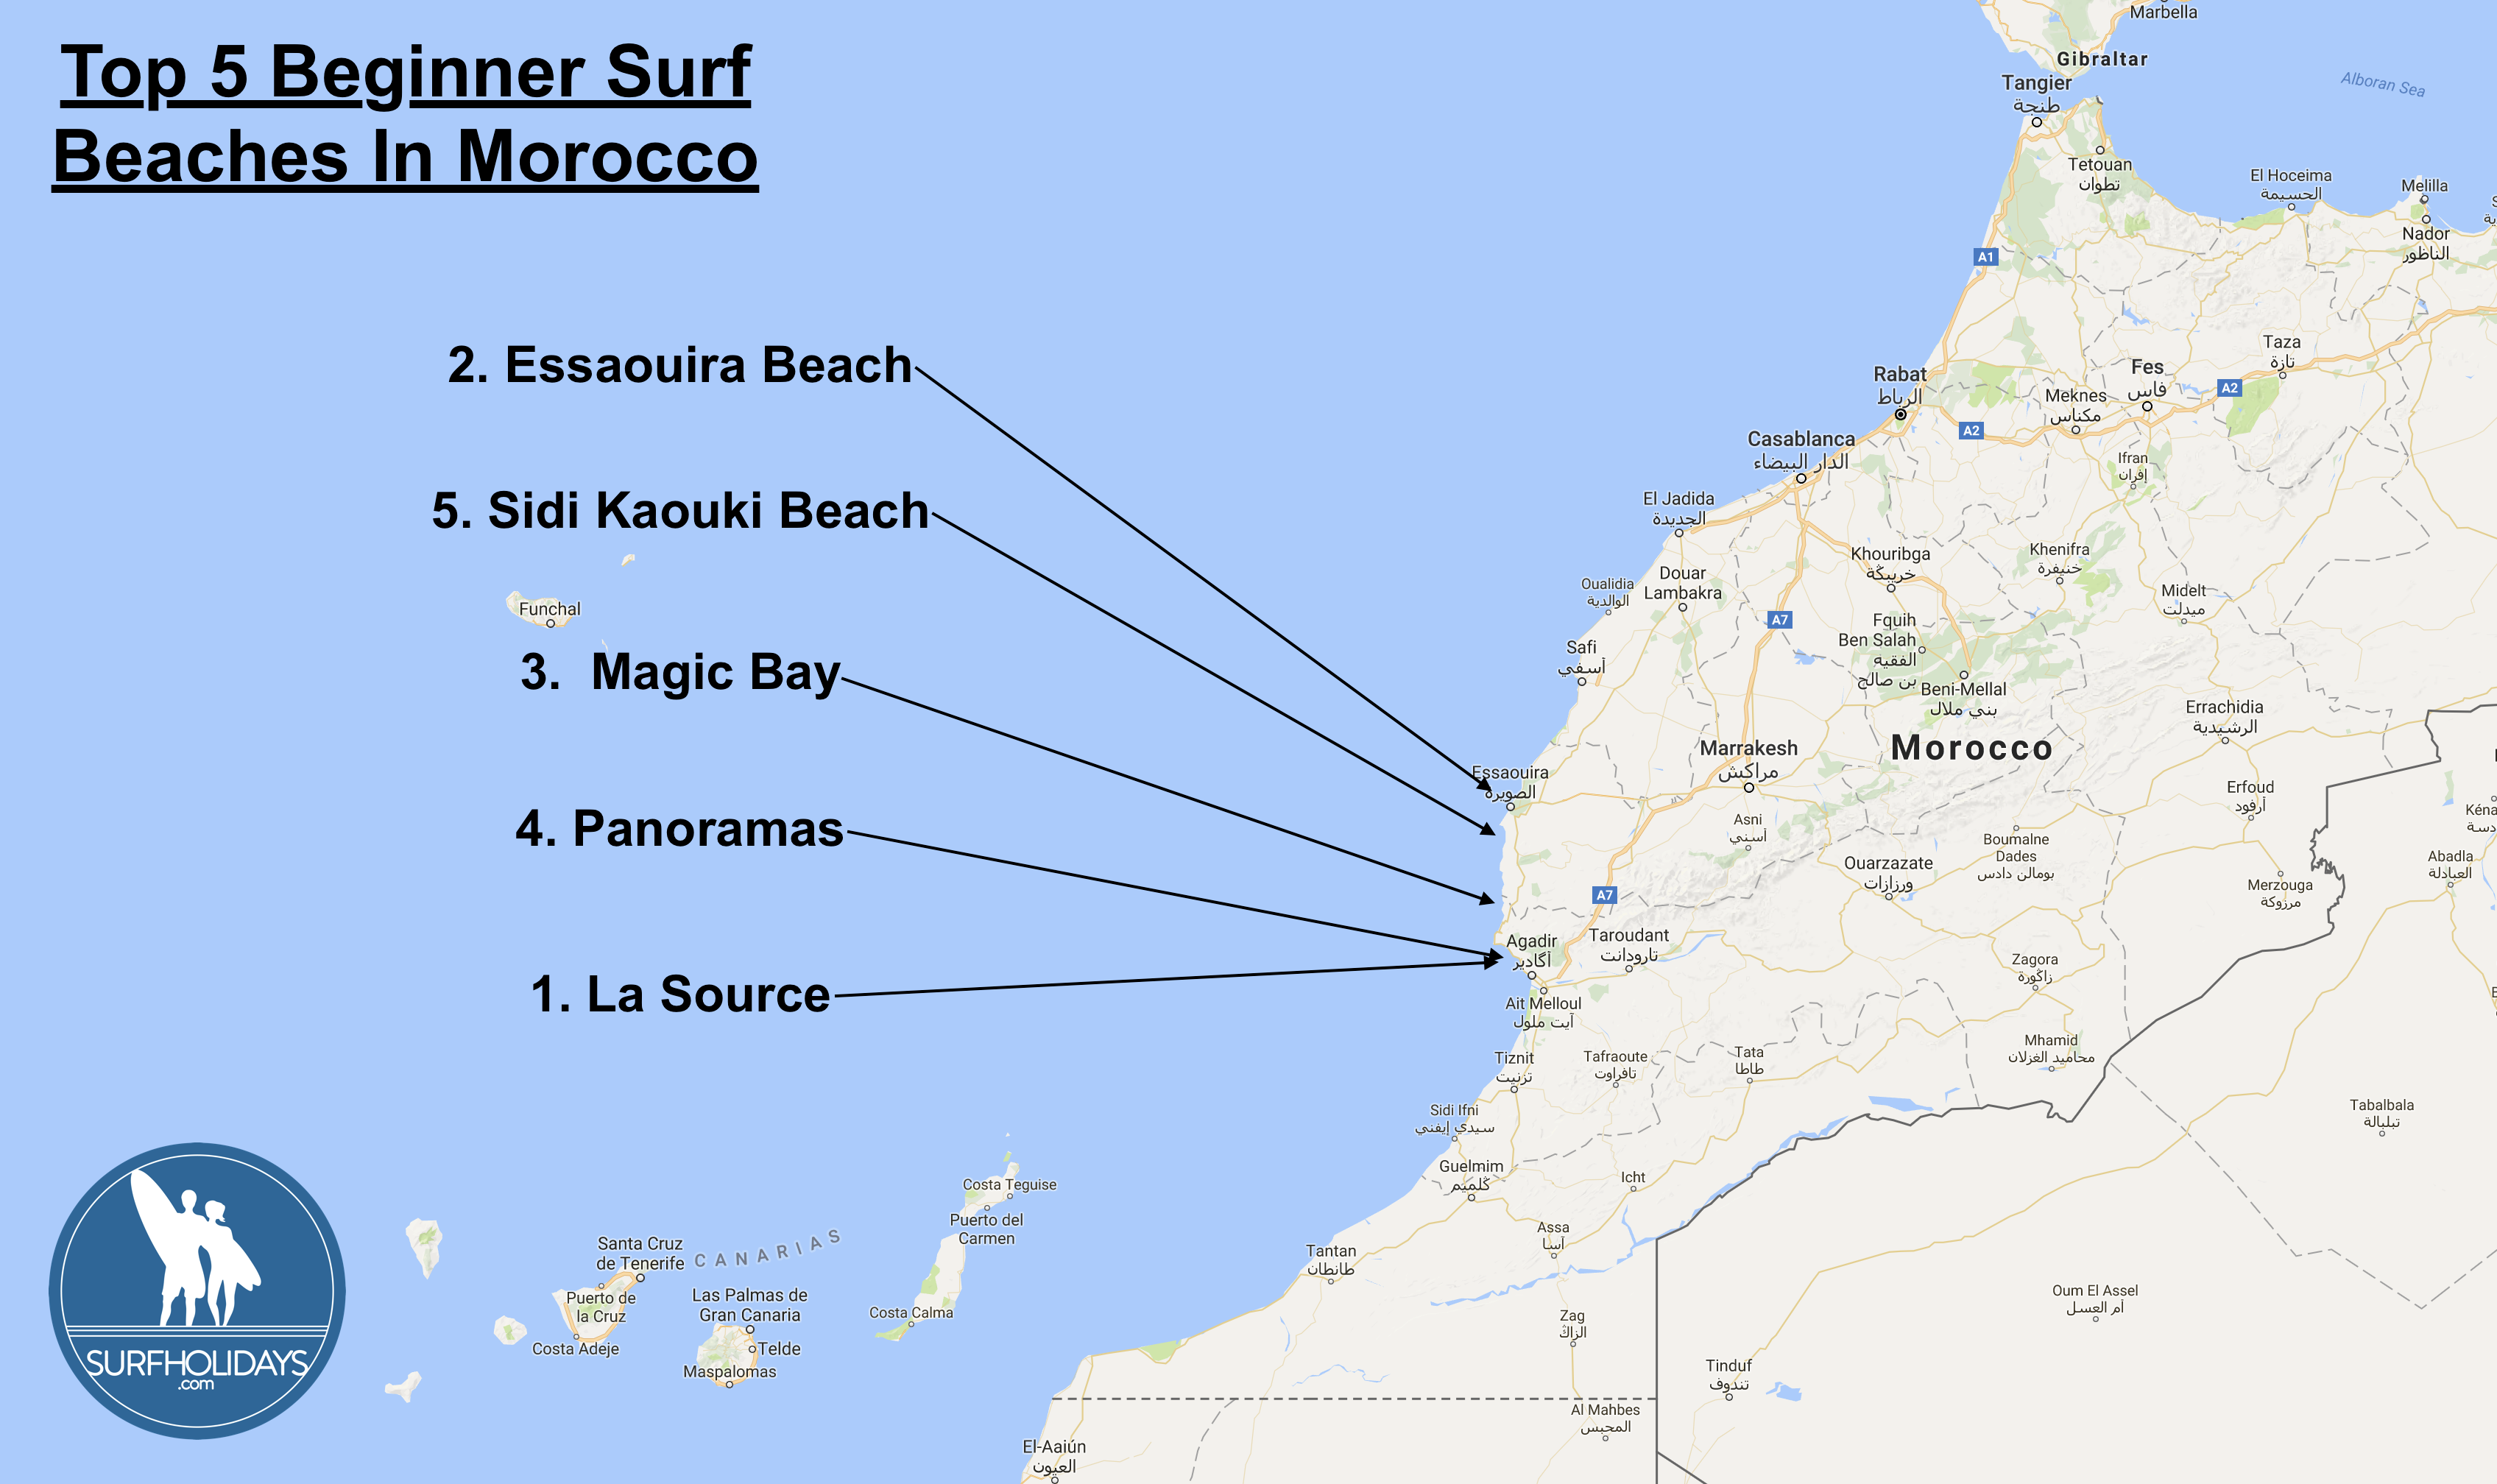 Top Five Beginner Surf Beaches in Morocco